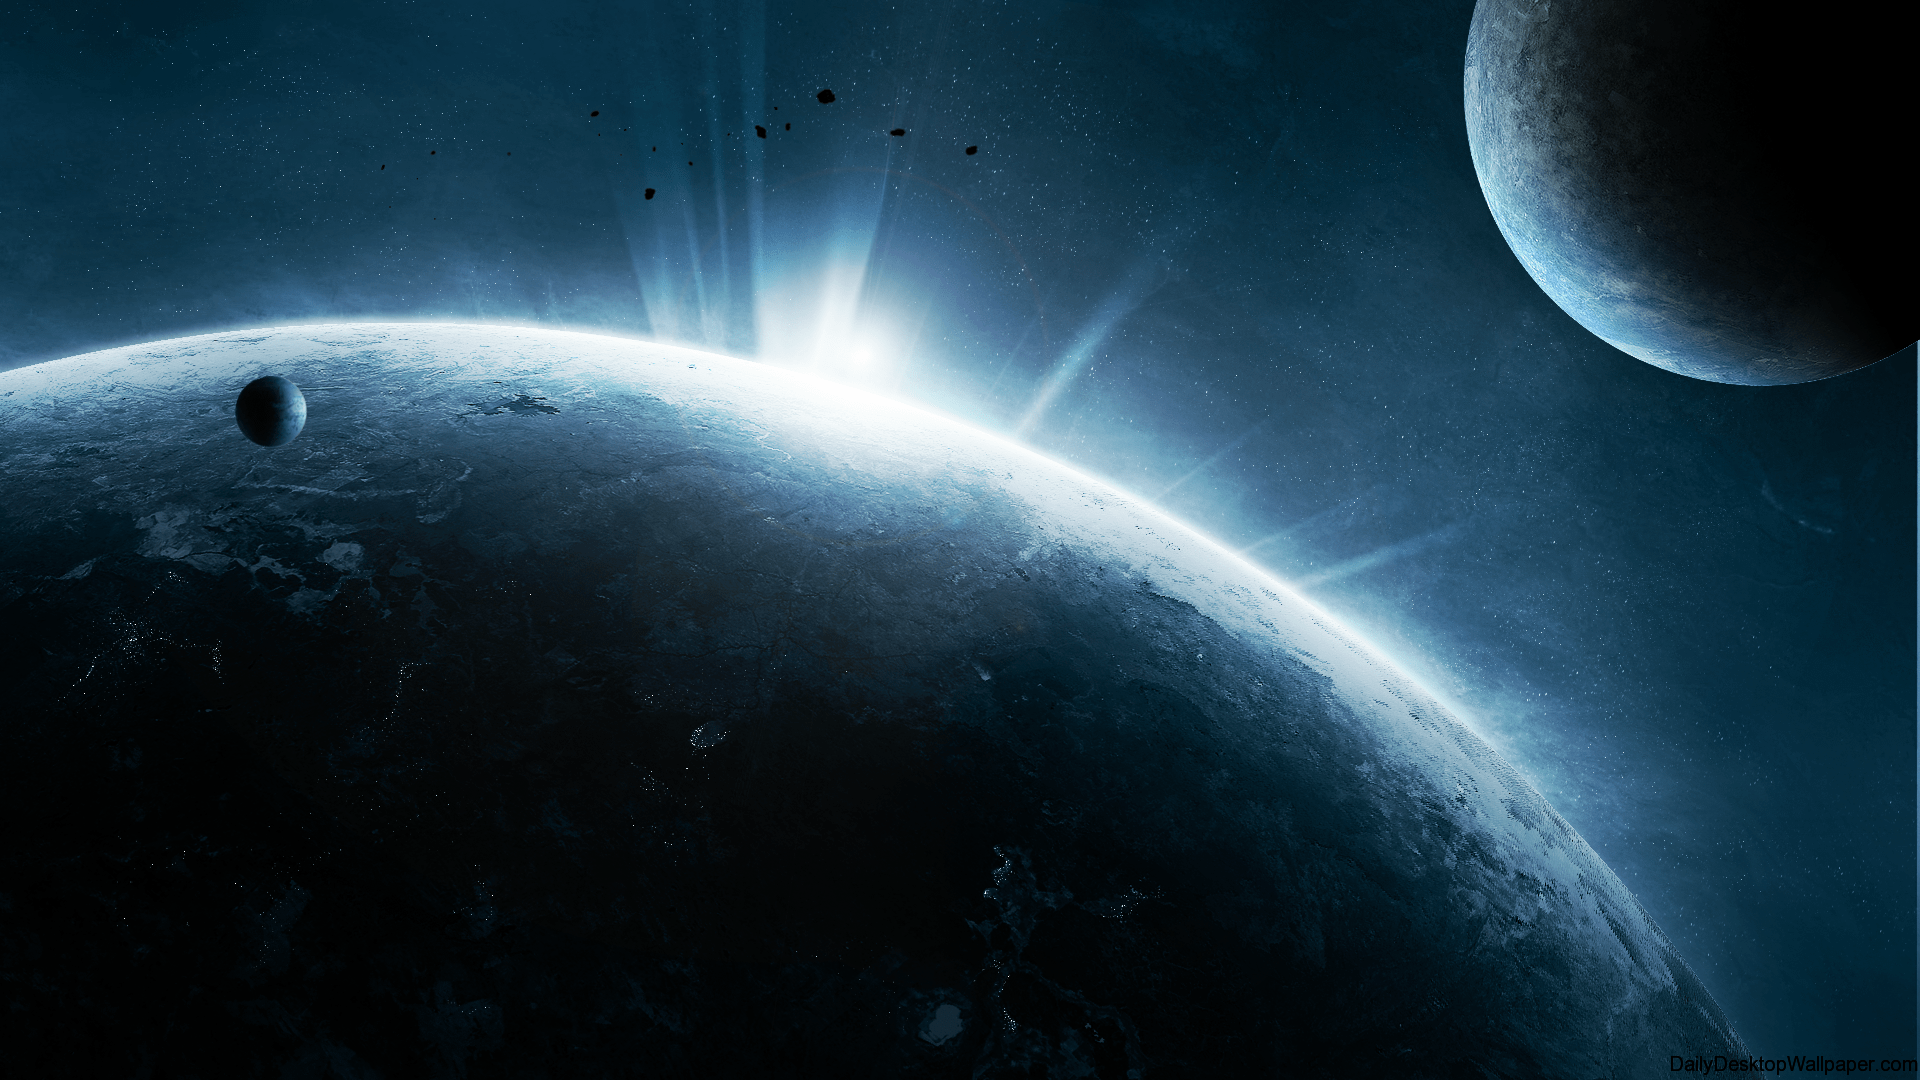 Earth 3d Wallpaper Android Deep Space Wallpaper Hd Wallpapers